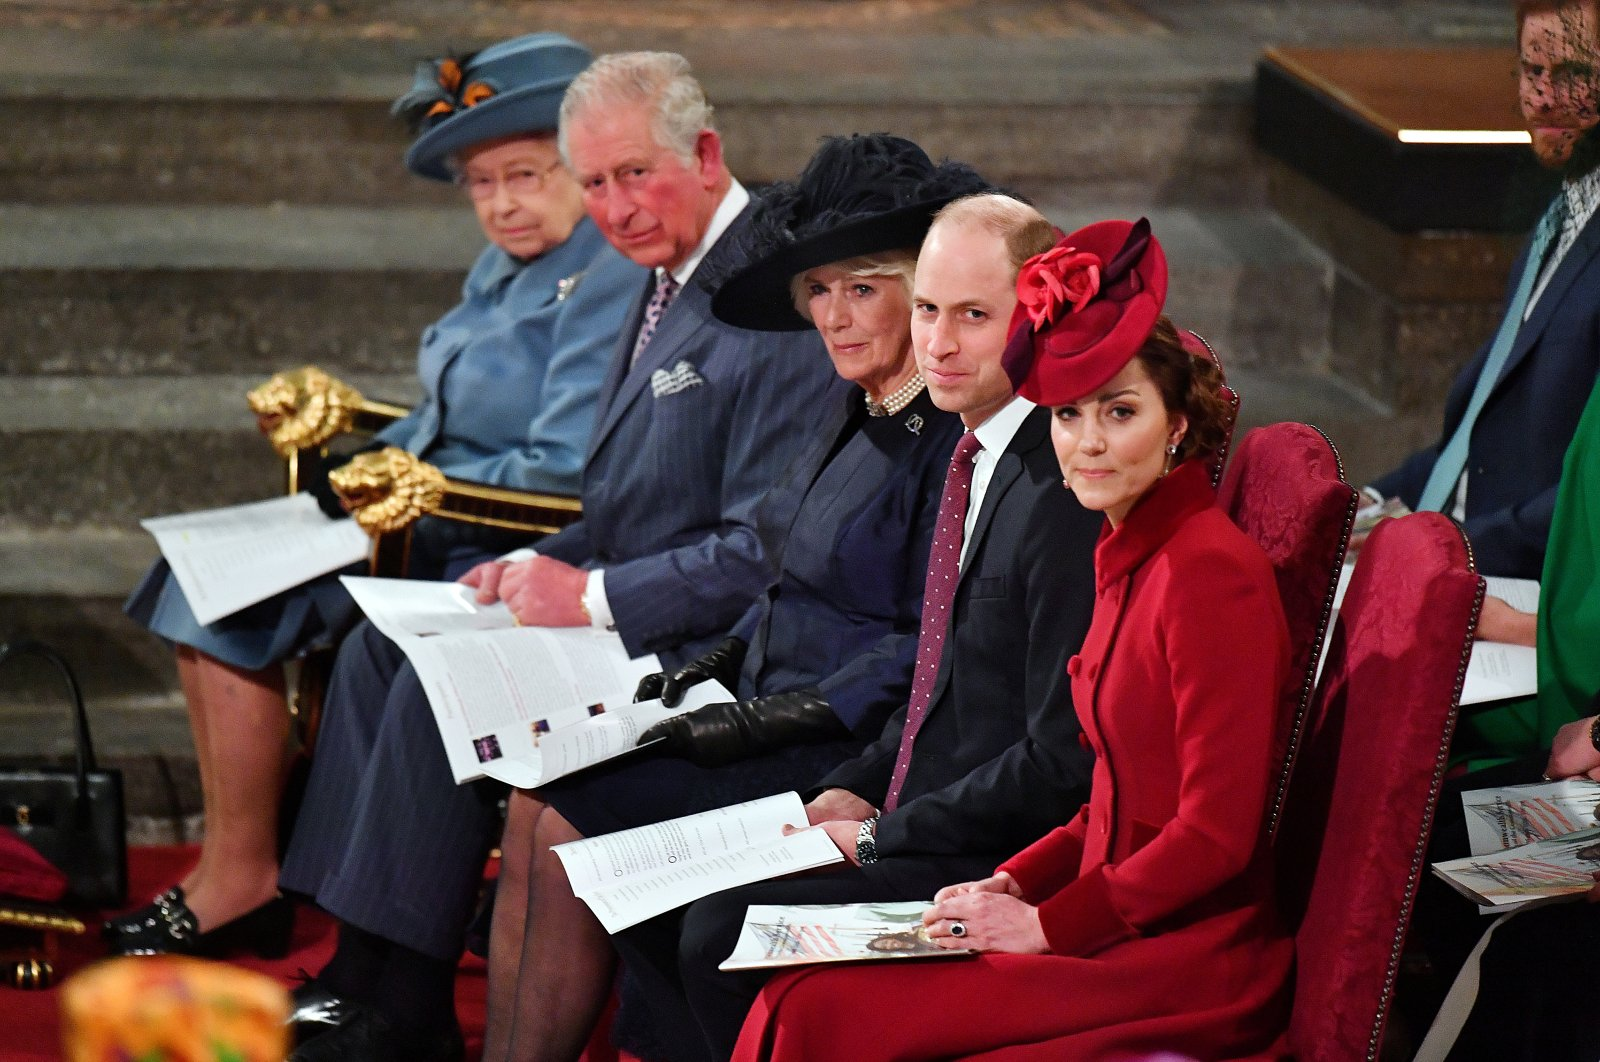 Britain's Queen Elizabeth II, Prince Charles, Camilla, Duchess of Cornwall, Prince Harry and Meghan, Duchess of Sussex, and Prince William and Catherine, Duchess of Cambridge, attend the annual Commonwealth Service at Westminster Abbey in London, Britain, March 9, 2020. (Reuters Photo)